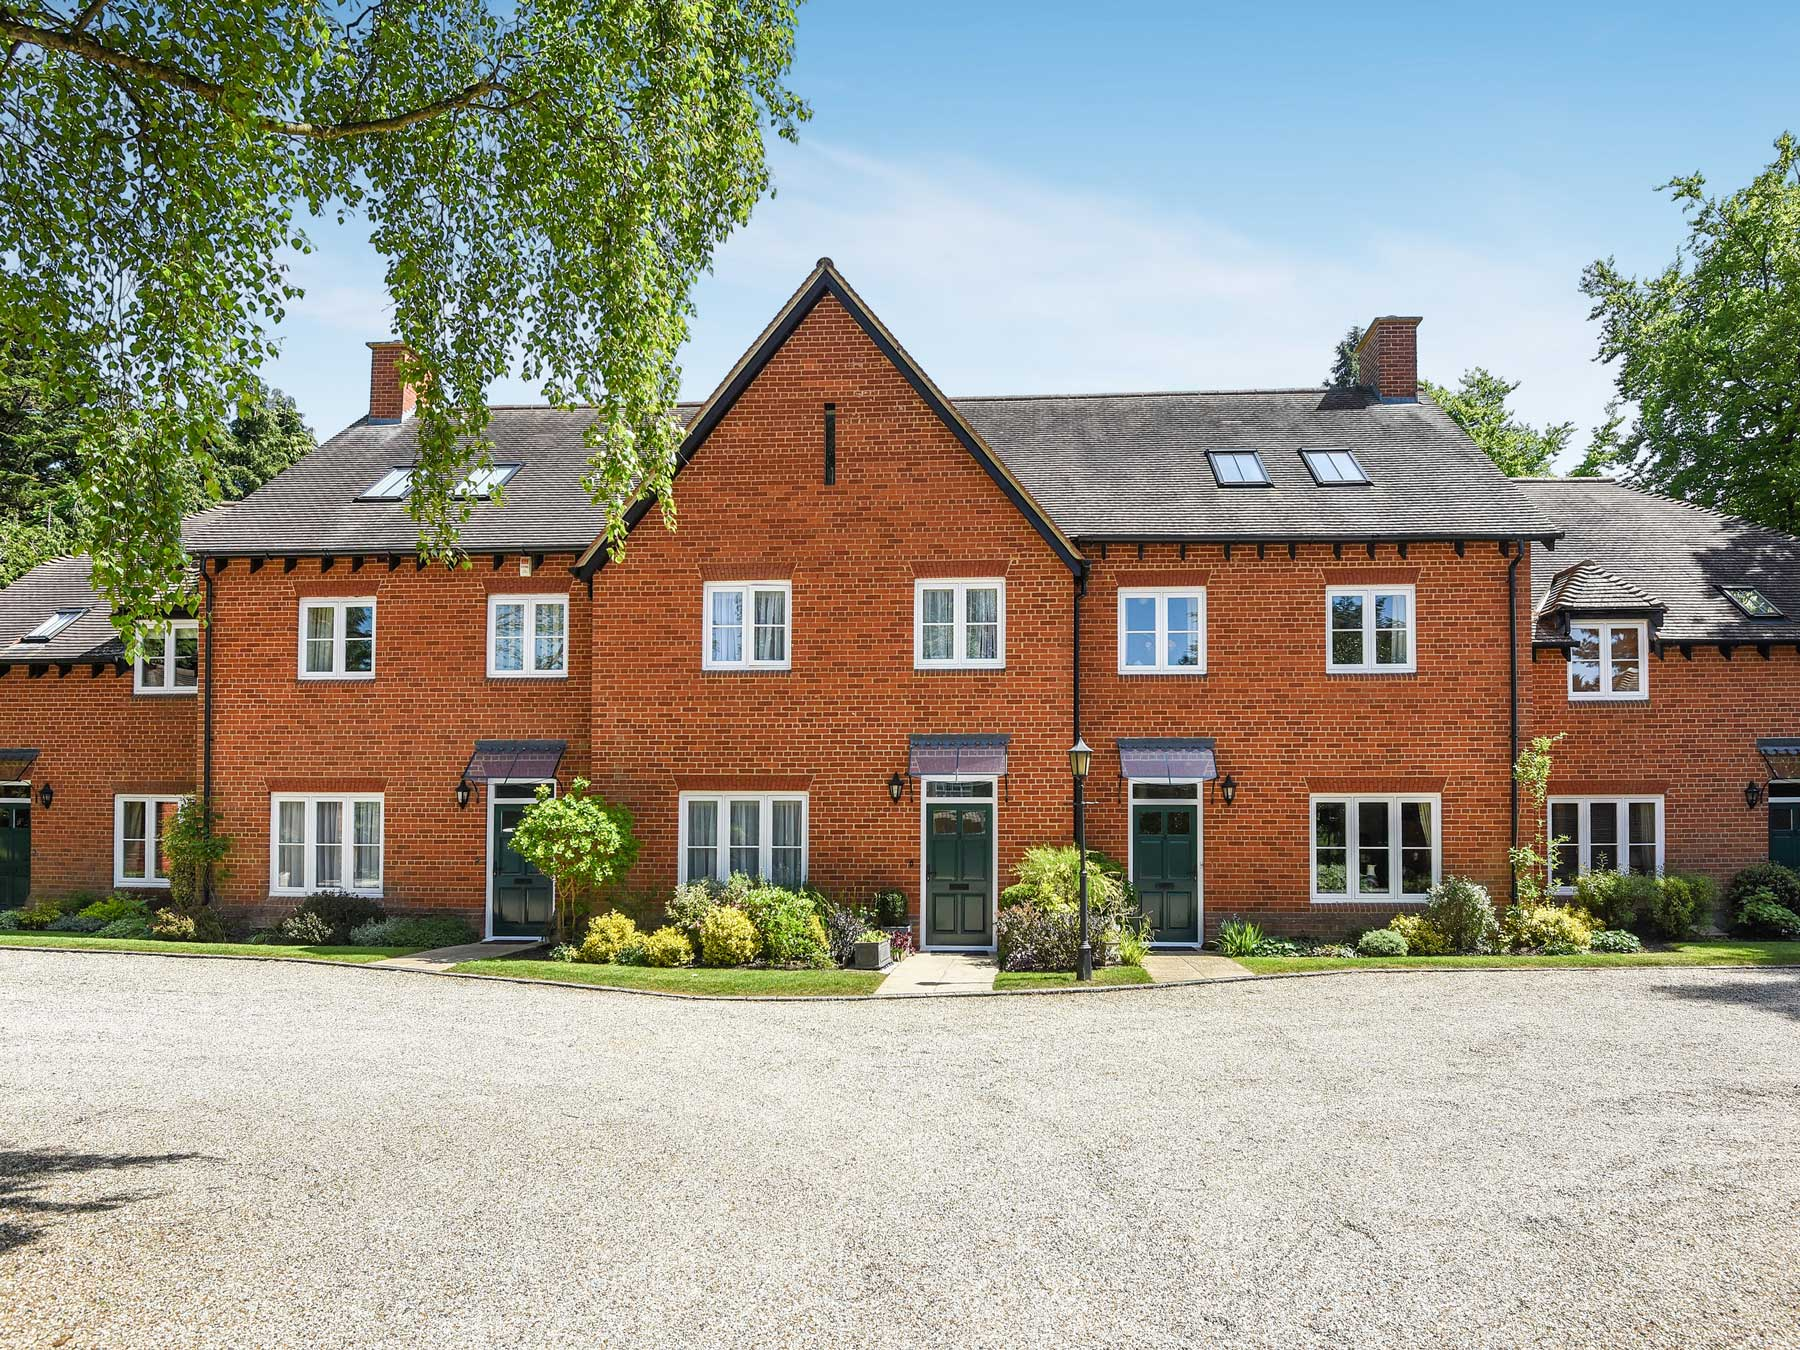 Retirement Properties For Sale In Hampshire